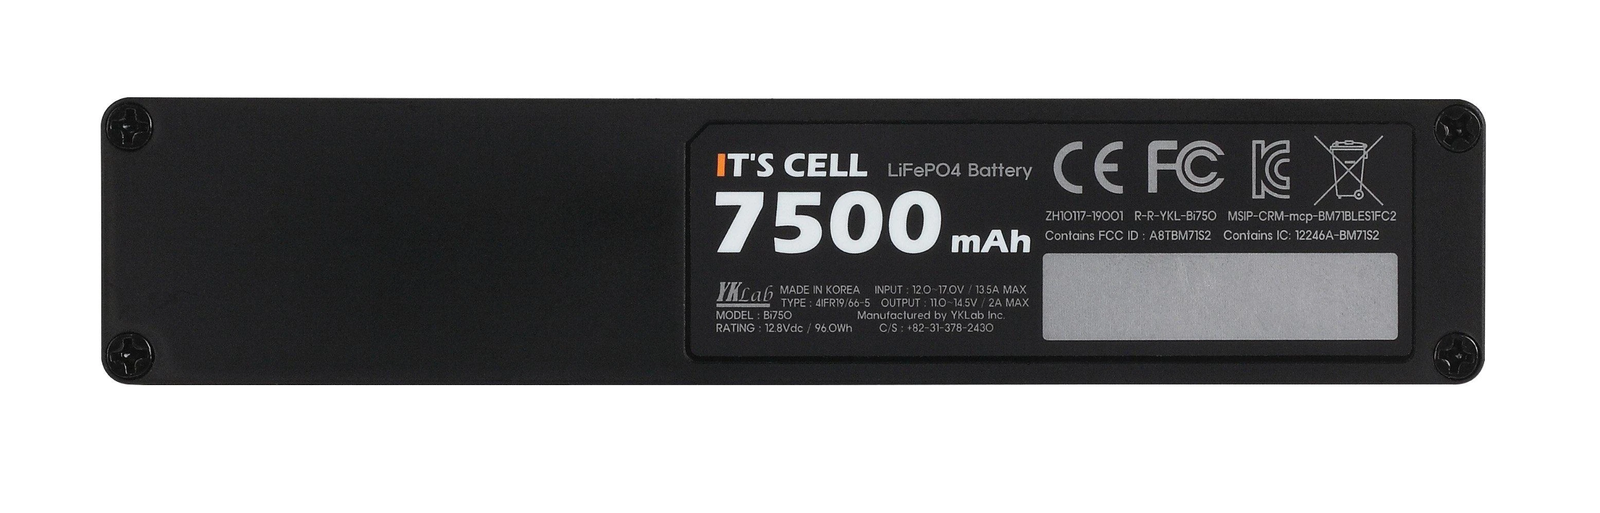 ITS CELL Bi-750e  BATTERY EXPENSION ONLY 7500MAH